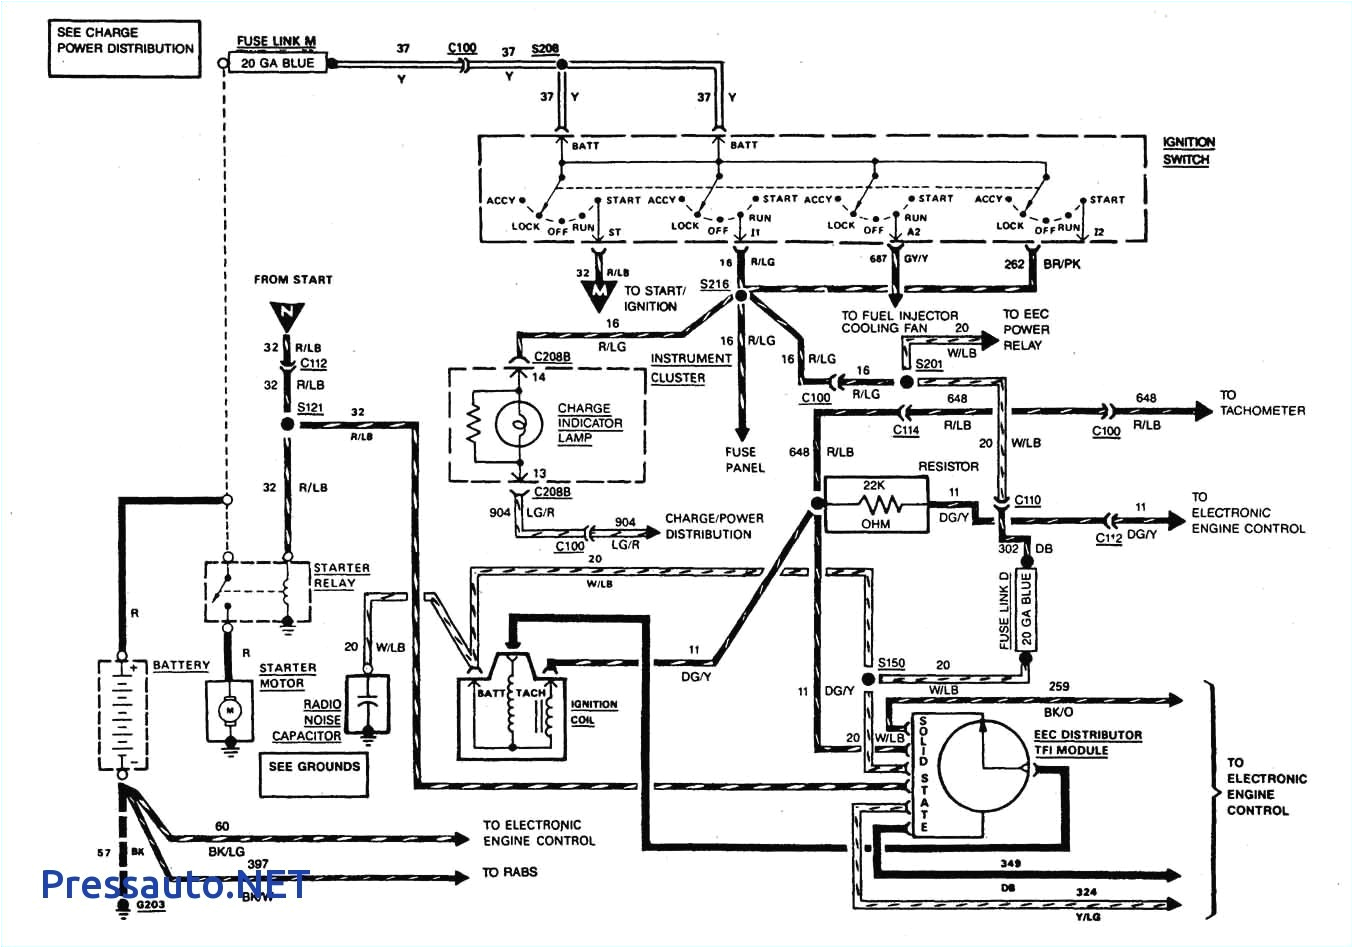 ford f 350 ignition module wiring wiring diagram details ford f 350 ignition module wiring